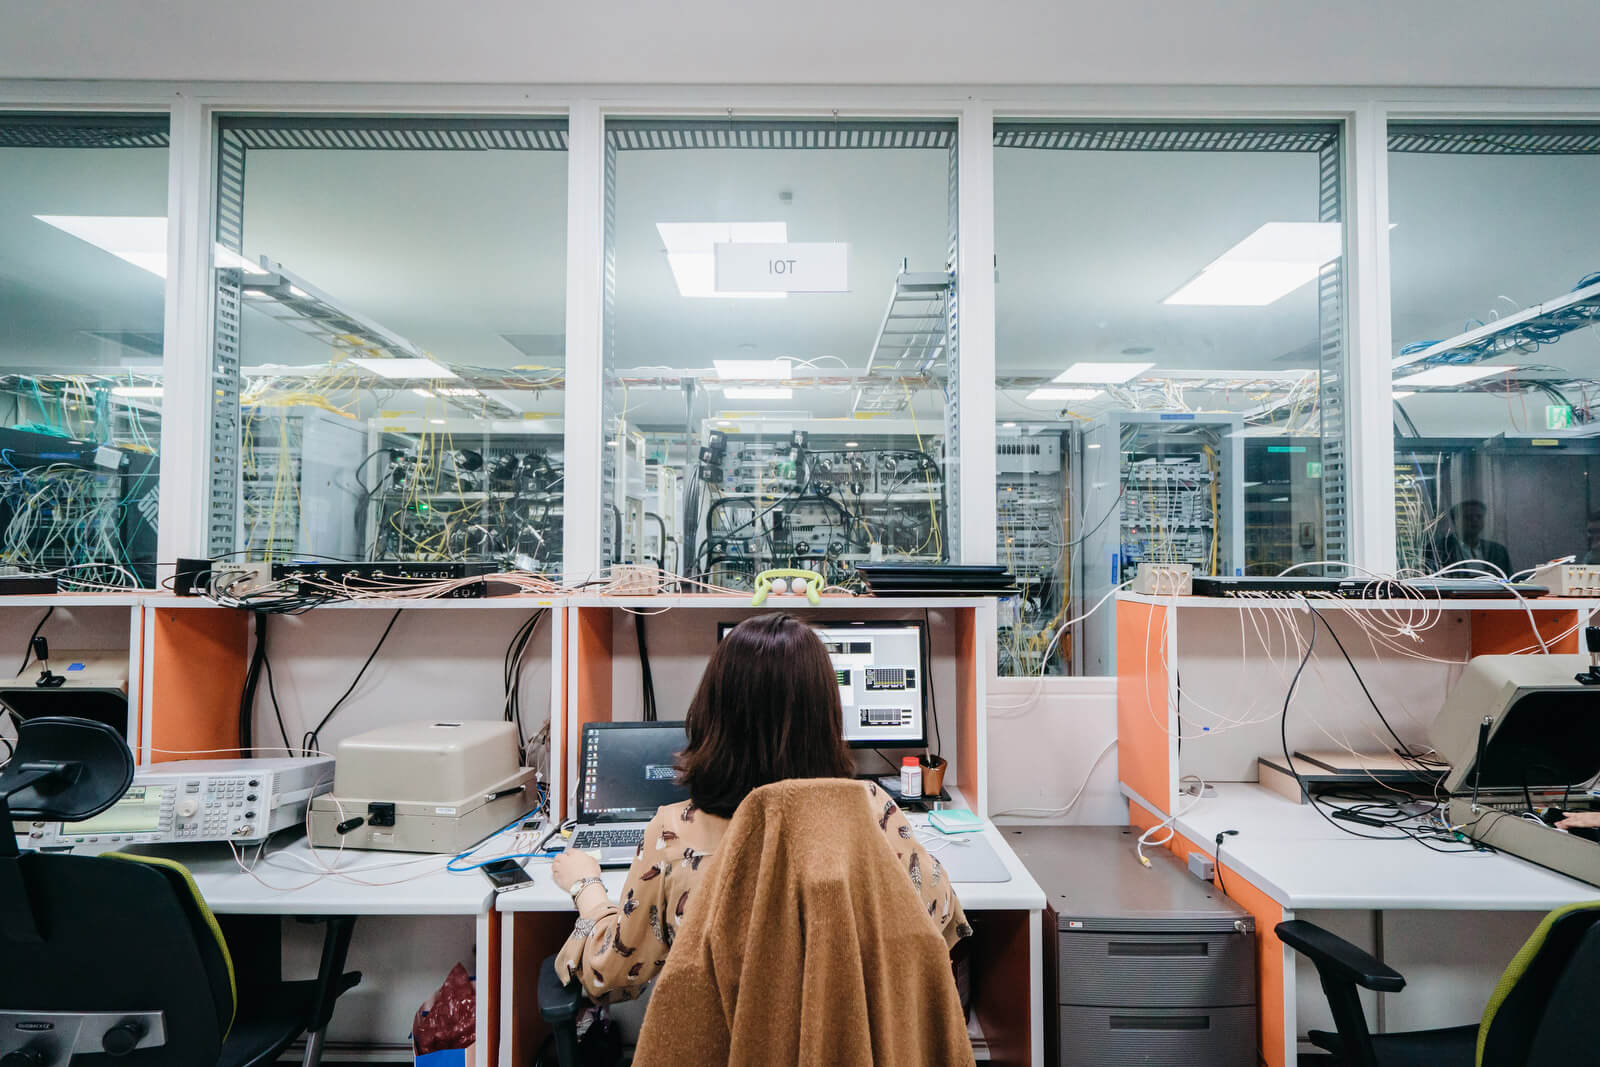 Engineers monitor network traffic and status at a 5G connectivity lab at Samsung headquarters.